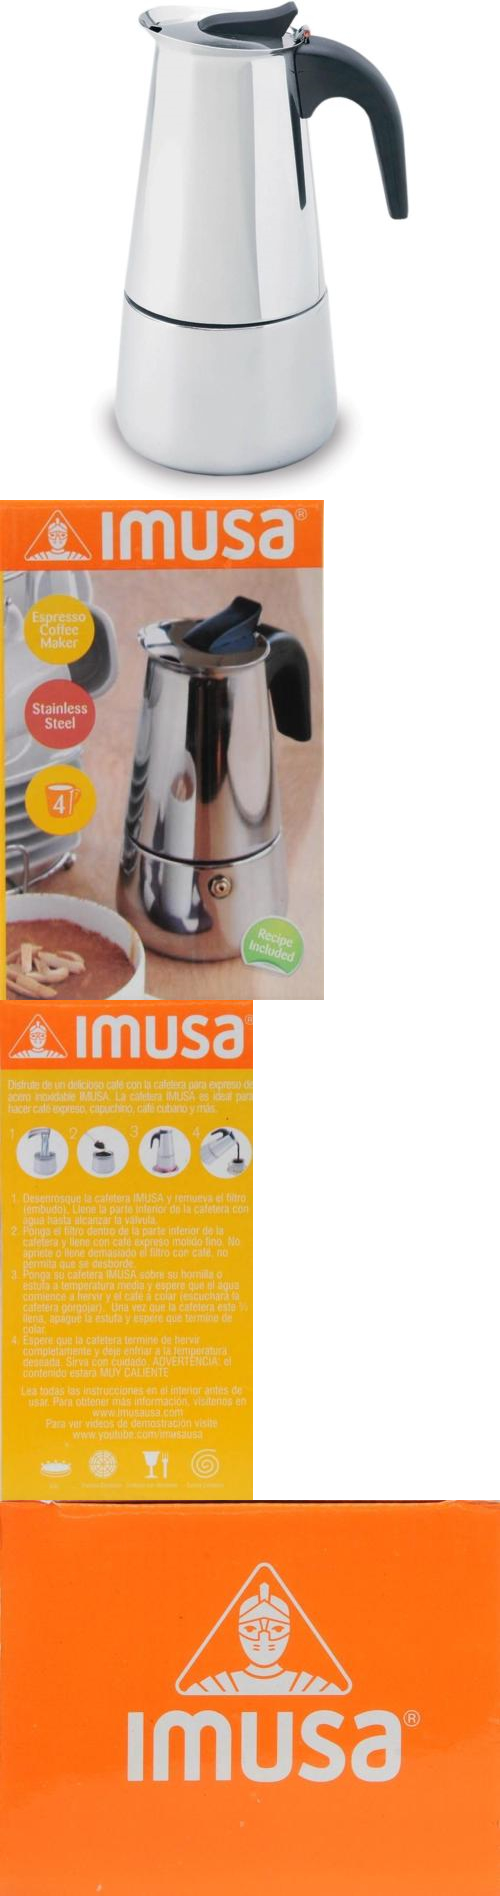 Percolators and moka pots imusa cup stainless steel